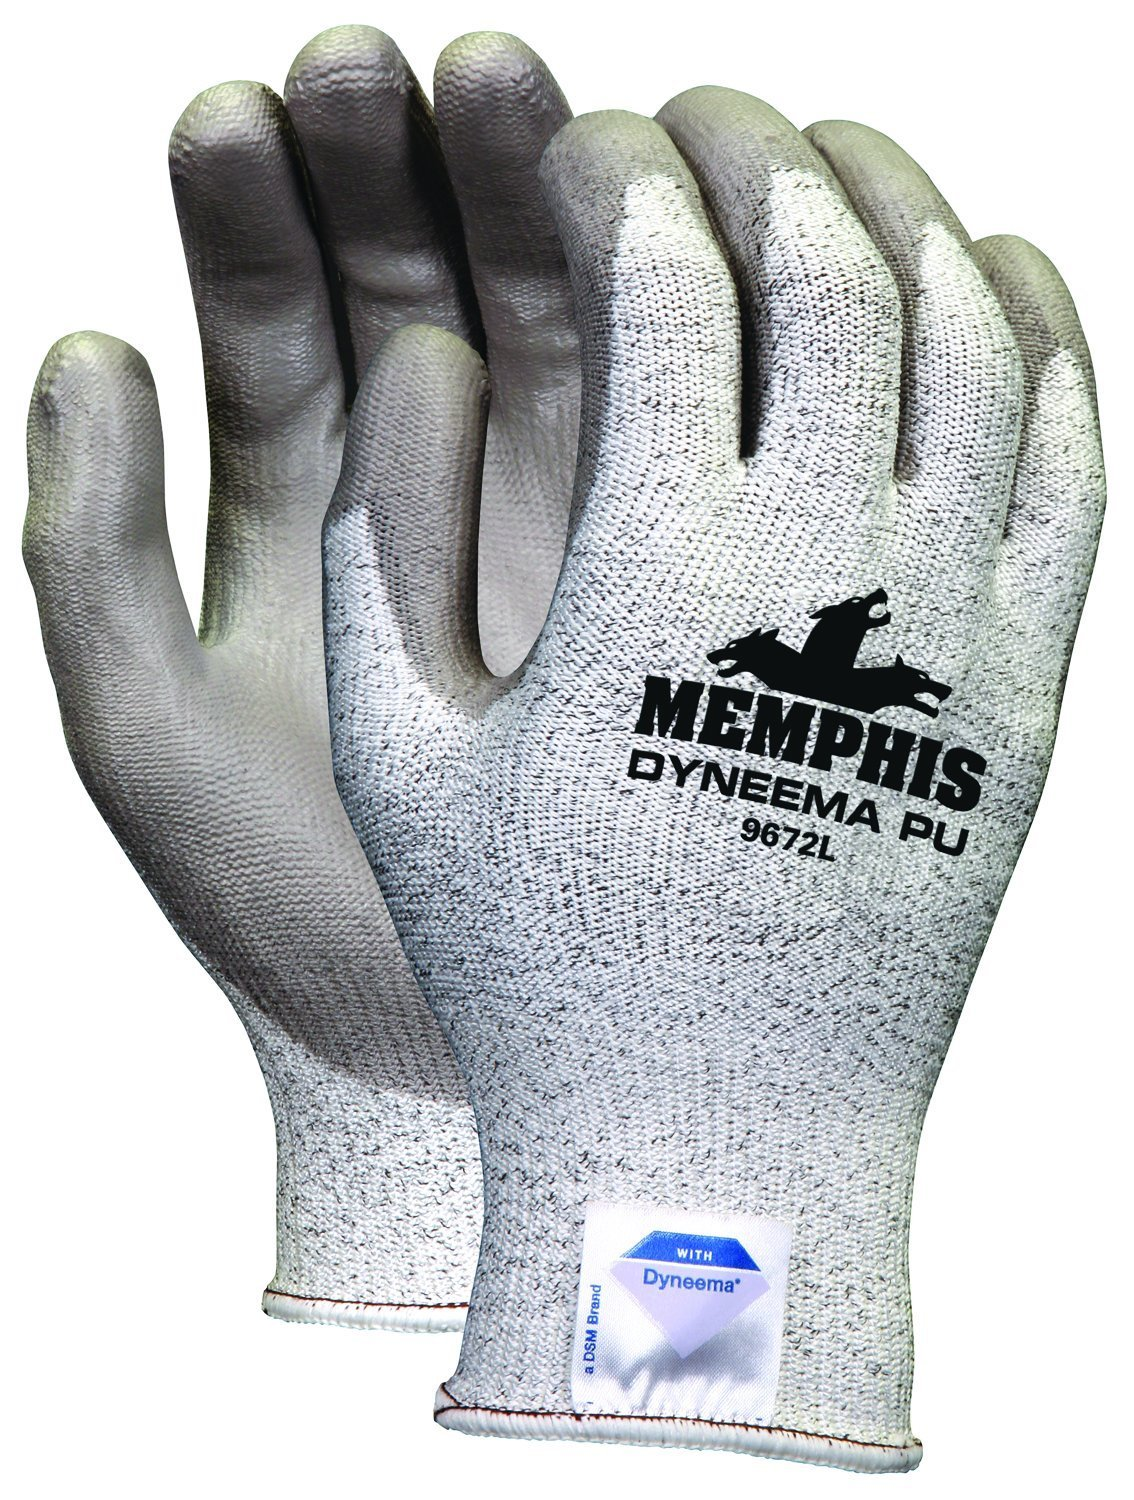 Memphis Glove 9672M Dyneema 13-Gauge Polyurethane Salt and Pepper Shell Gloves with Palm and Finger Coating, Gray, Medium, 1-Pair